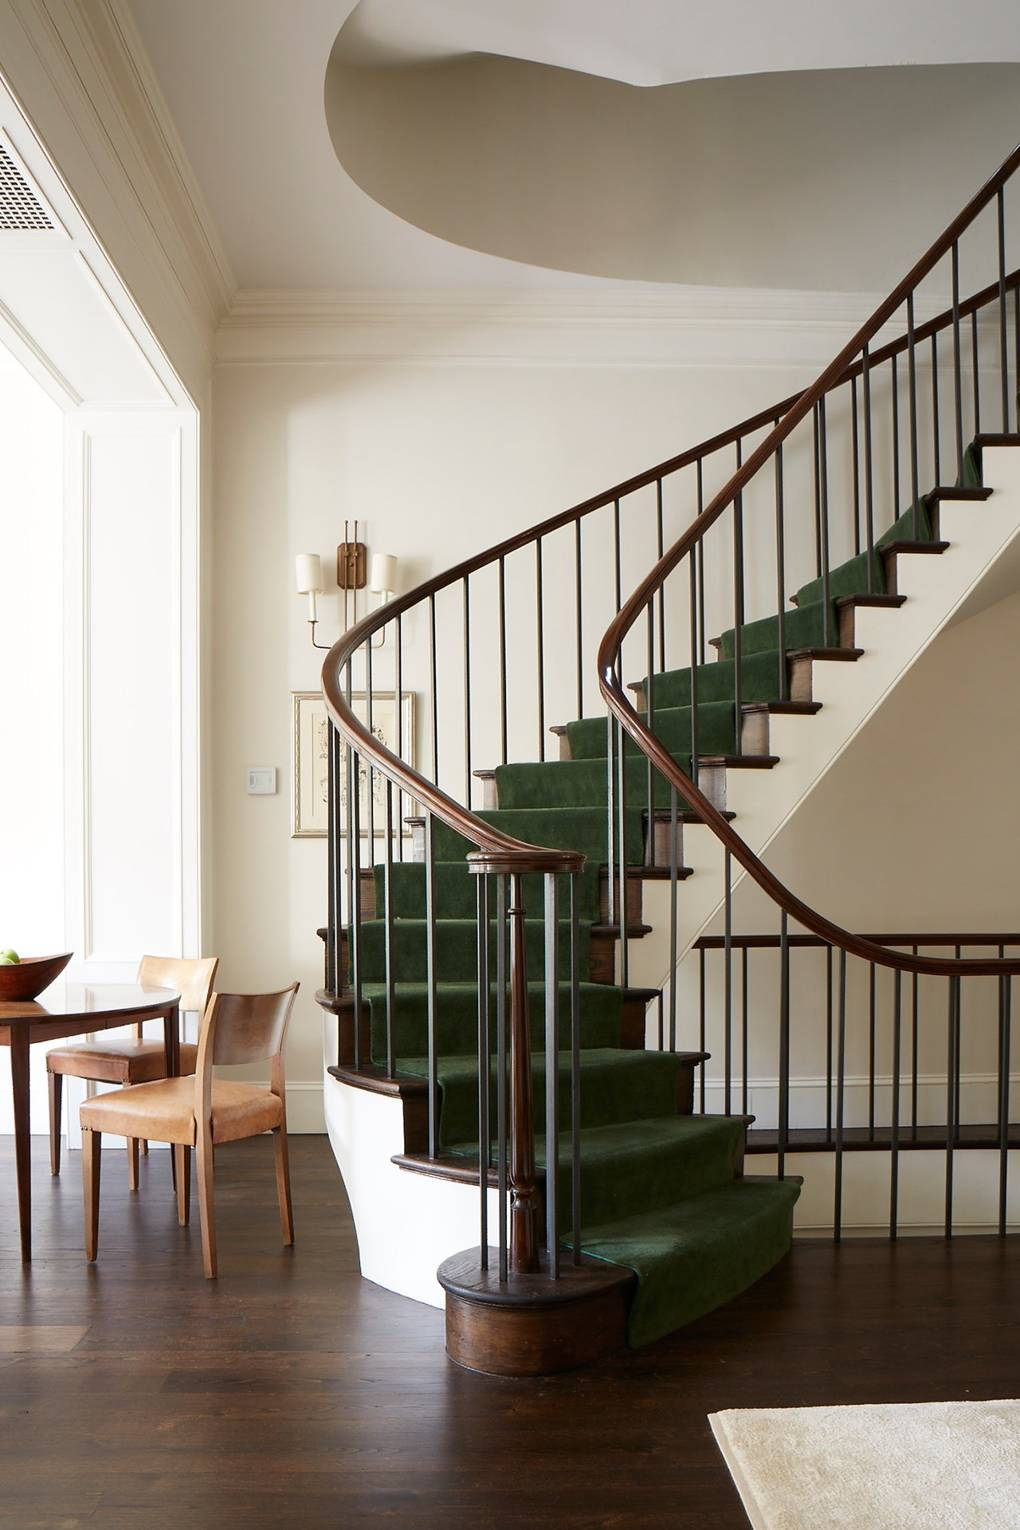 Staircase ideas | House & Garden